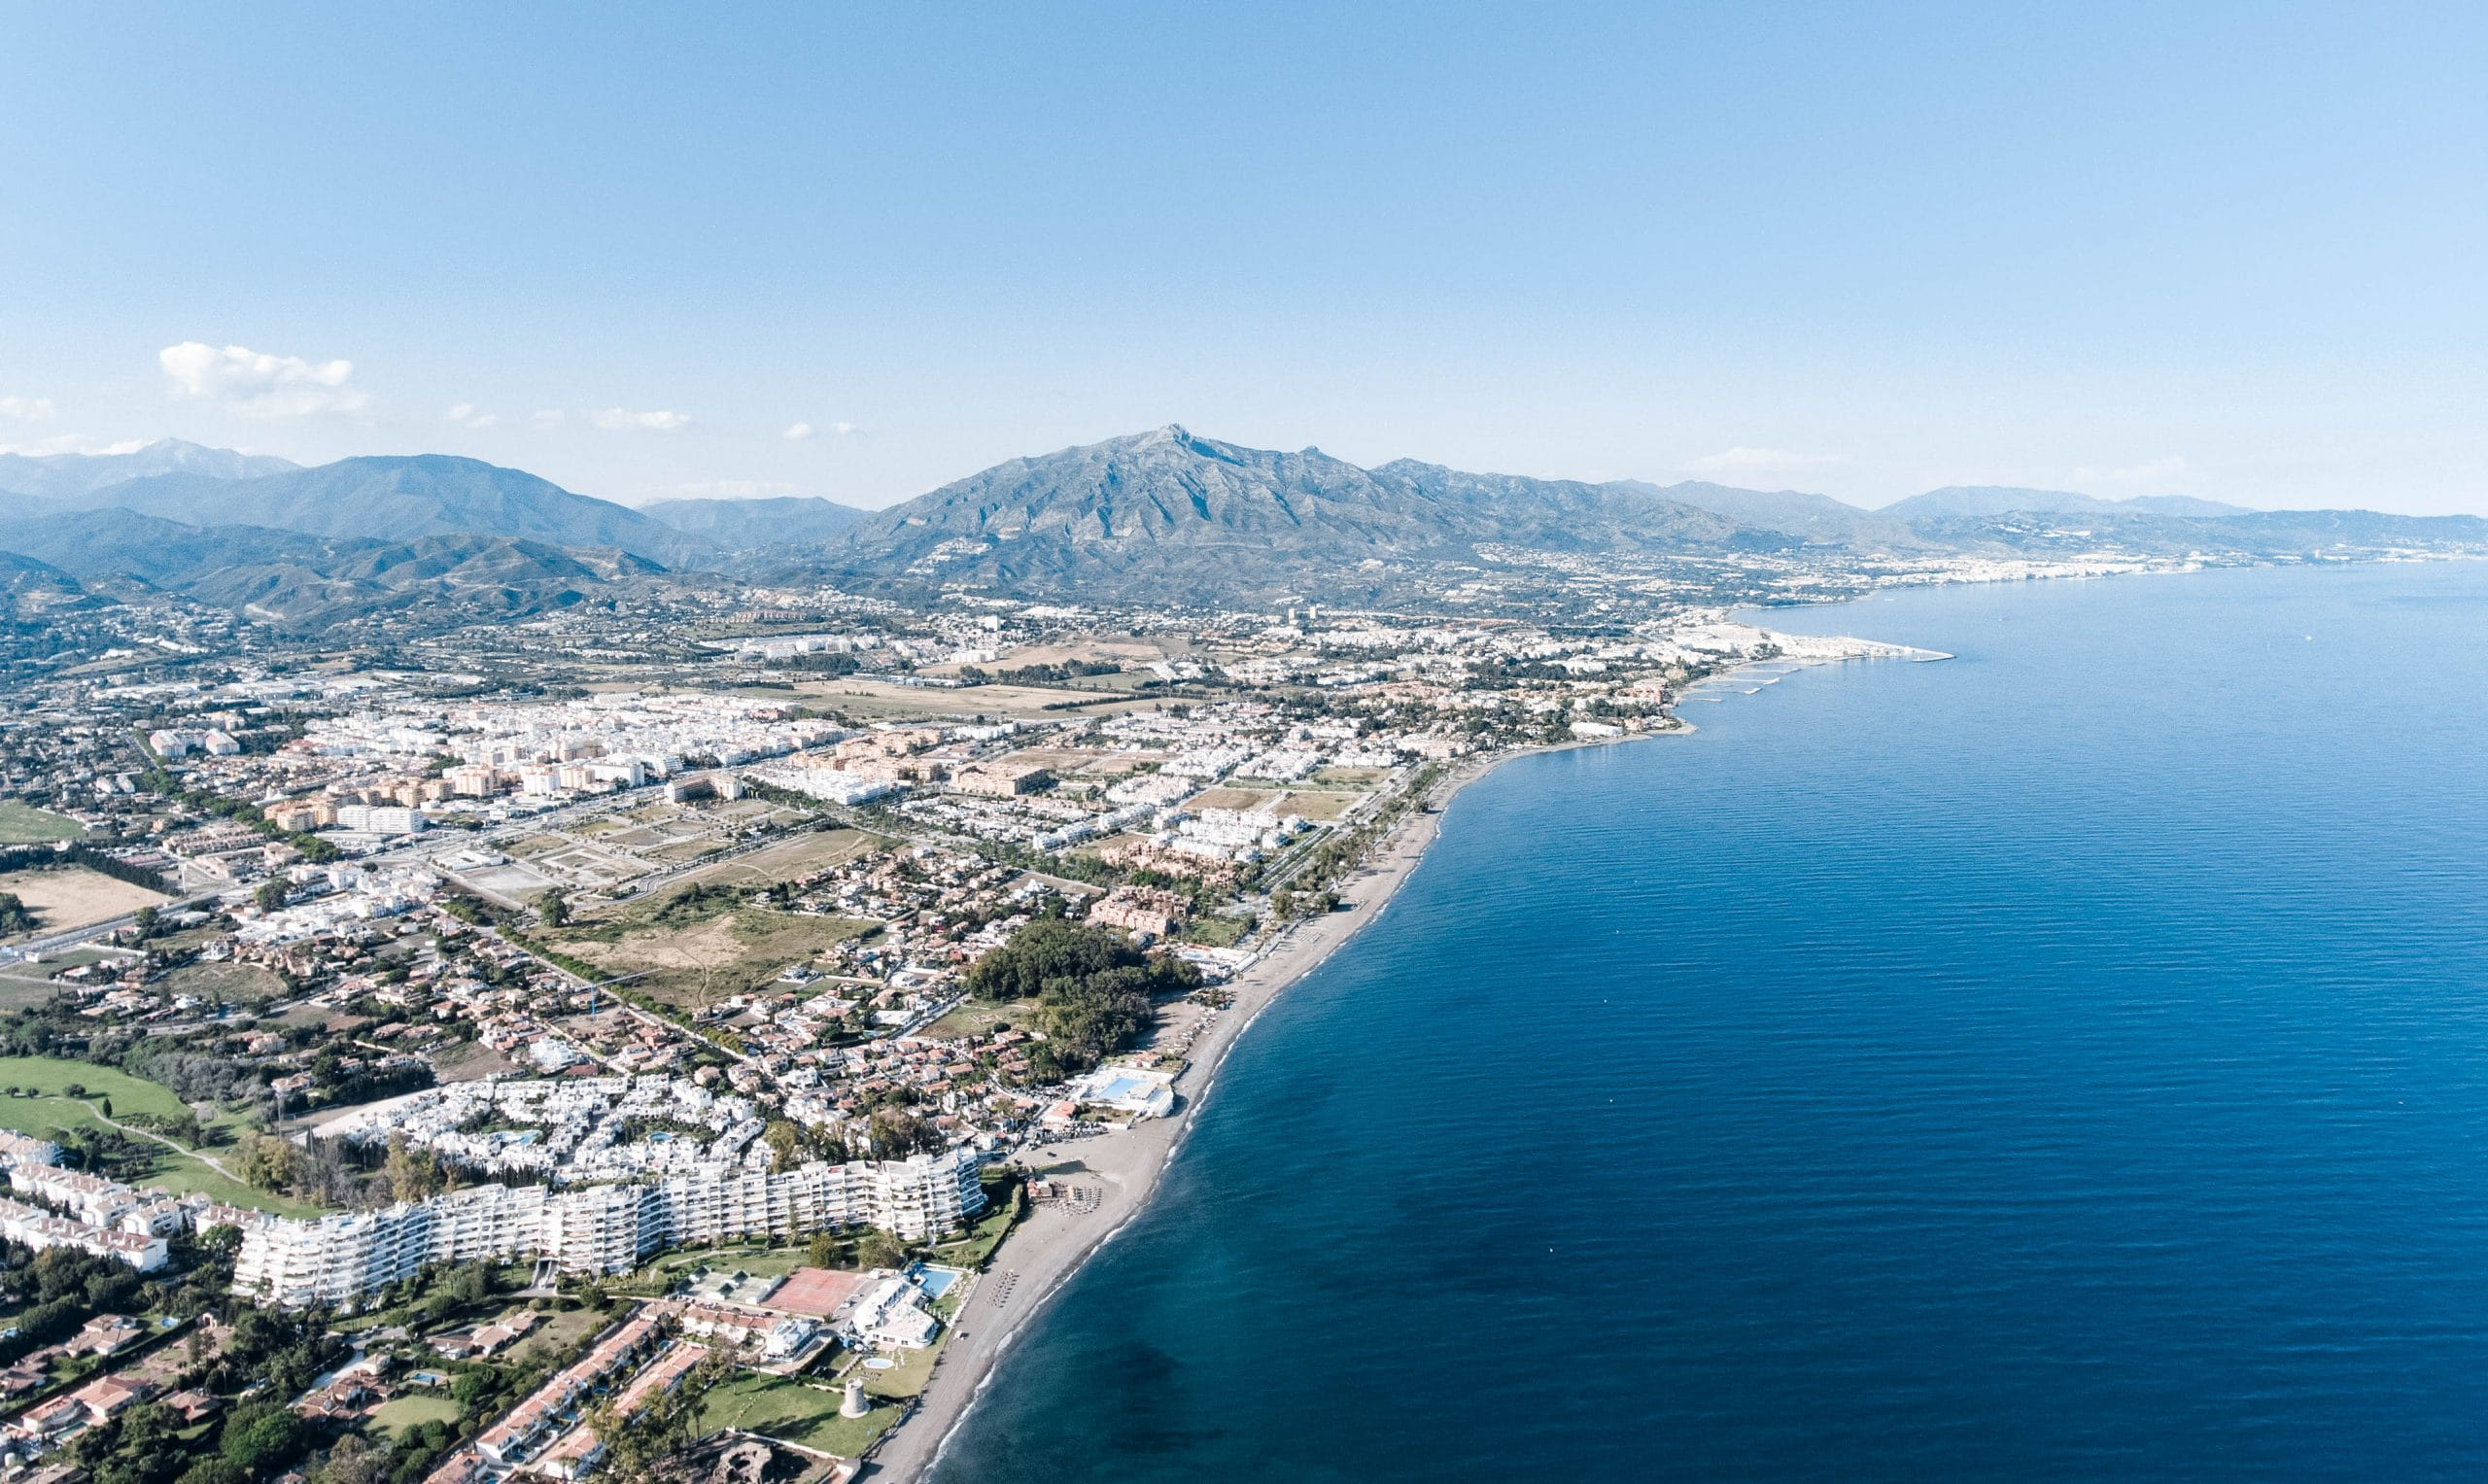 View of Marbella coast